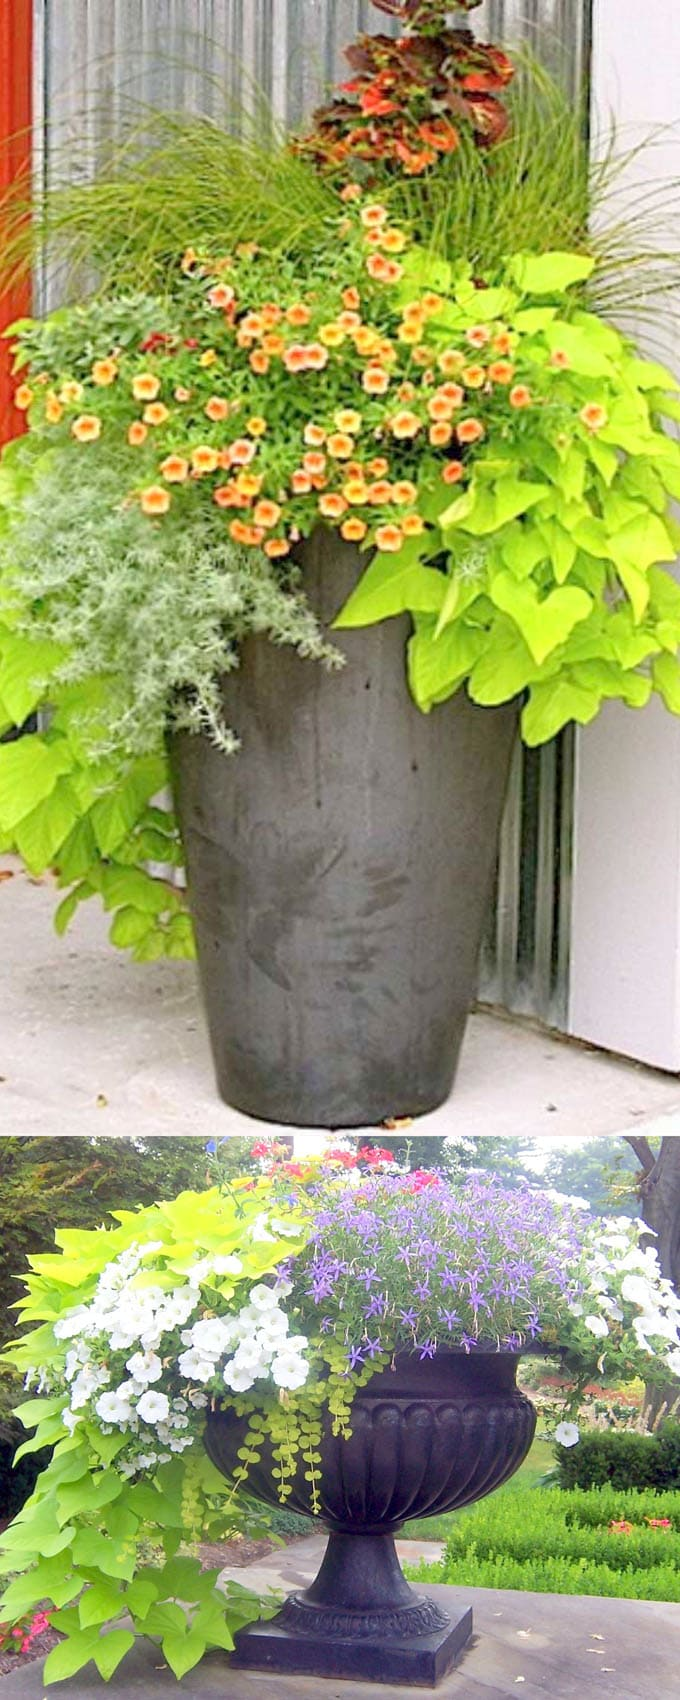 and decoration flower outside plant pots large garden wooden containers for planters sale ceramic planter plastic